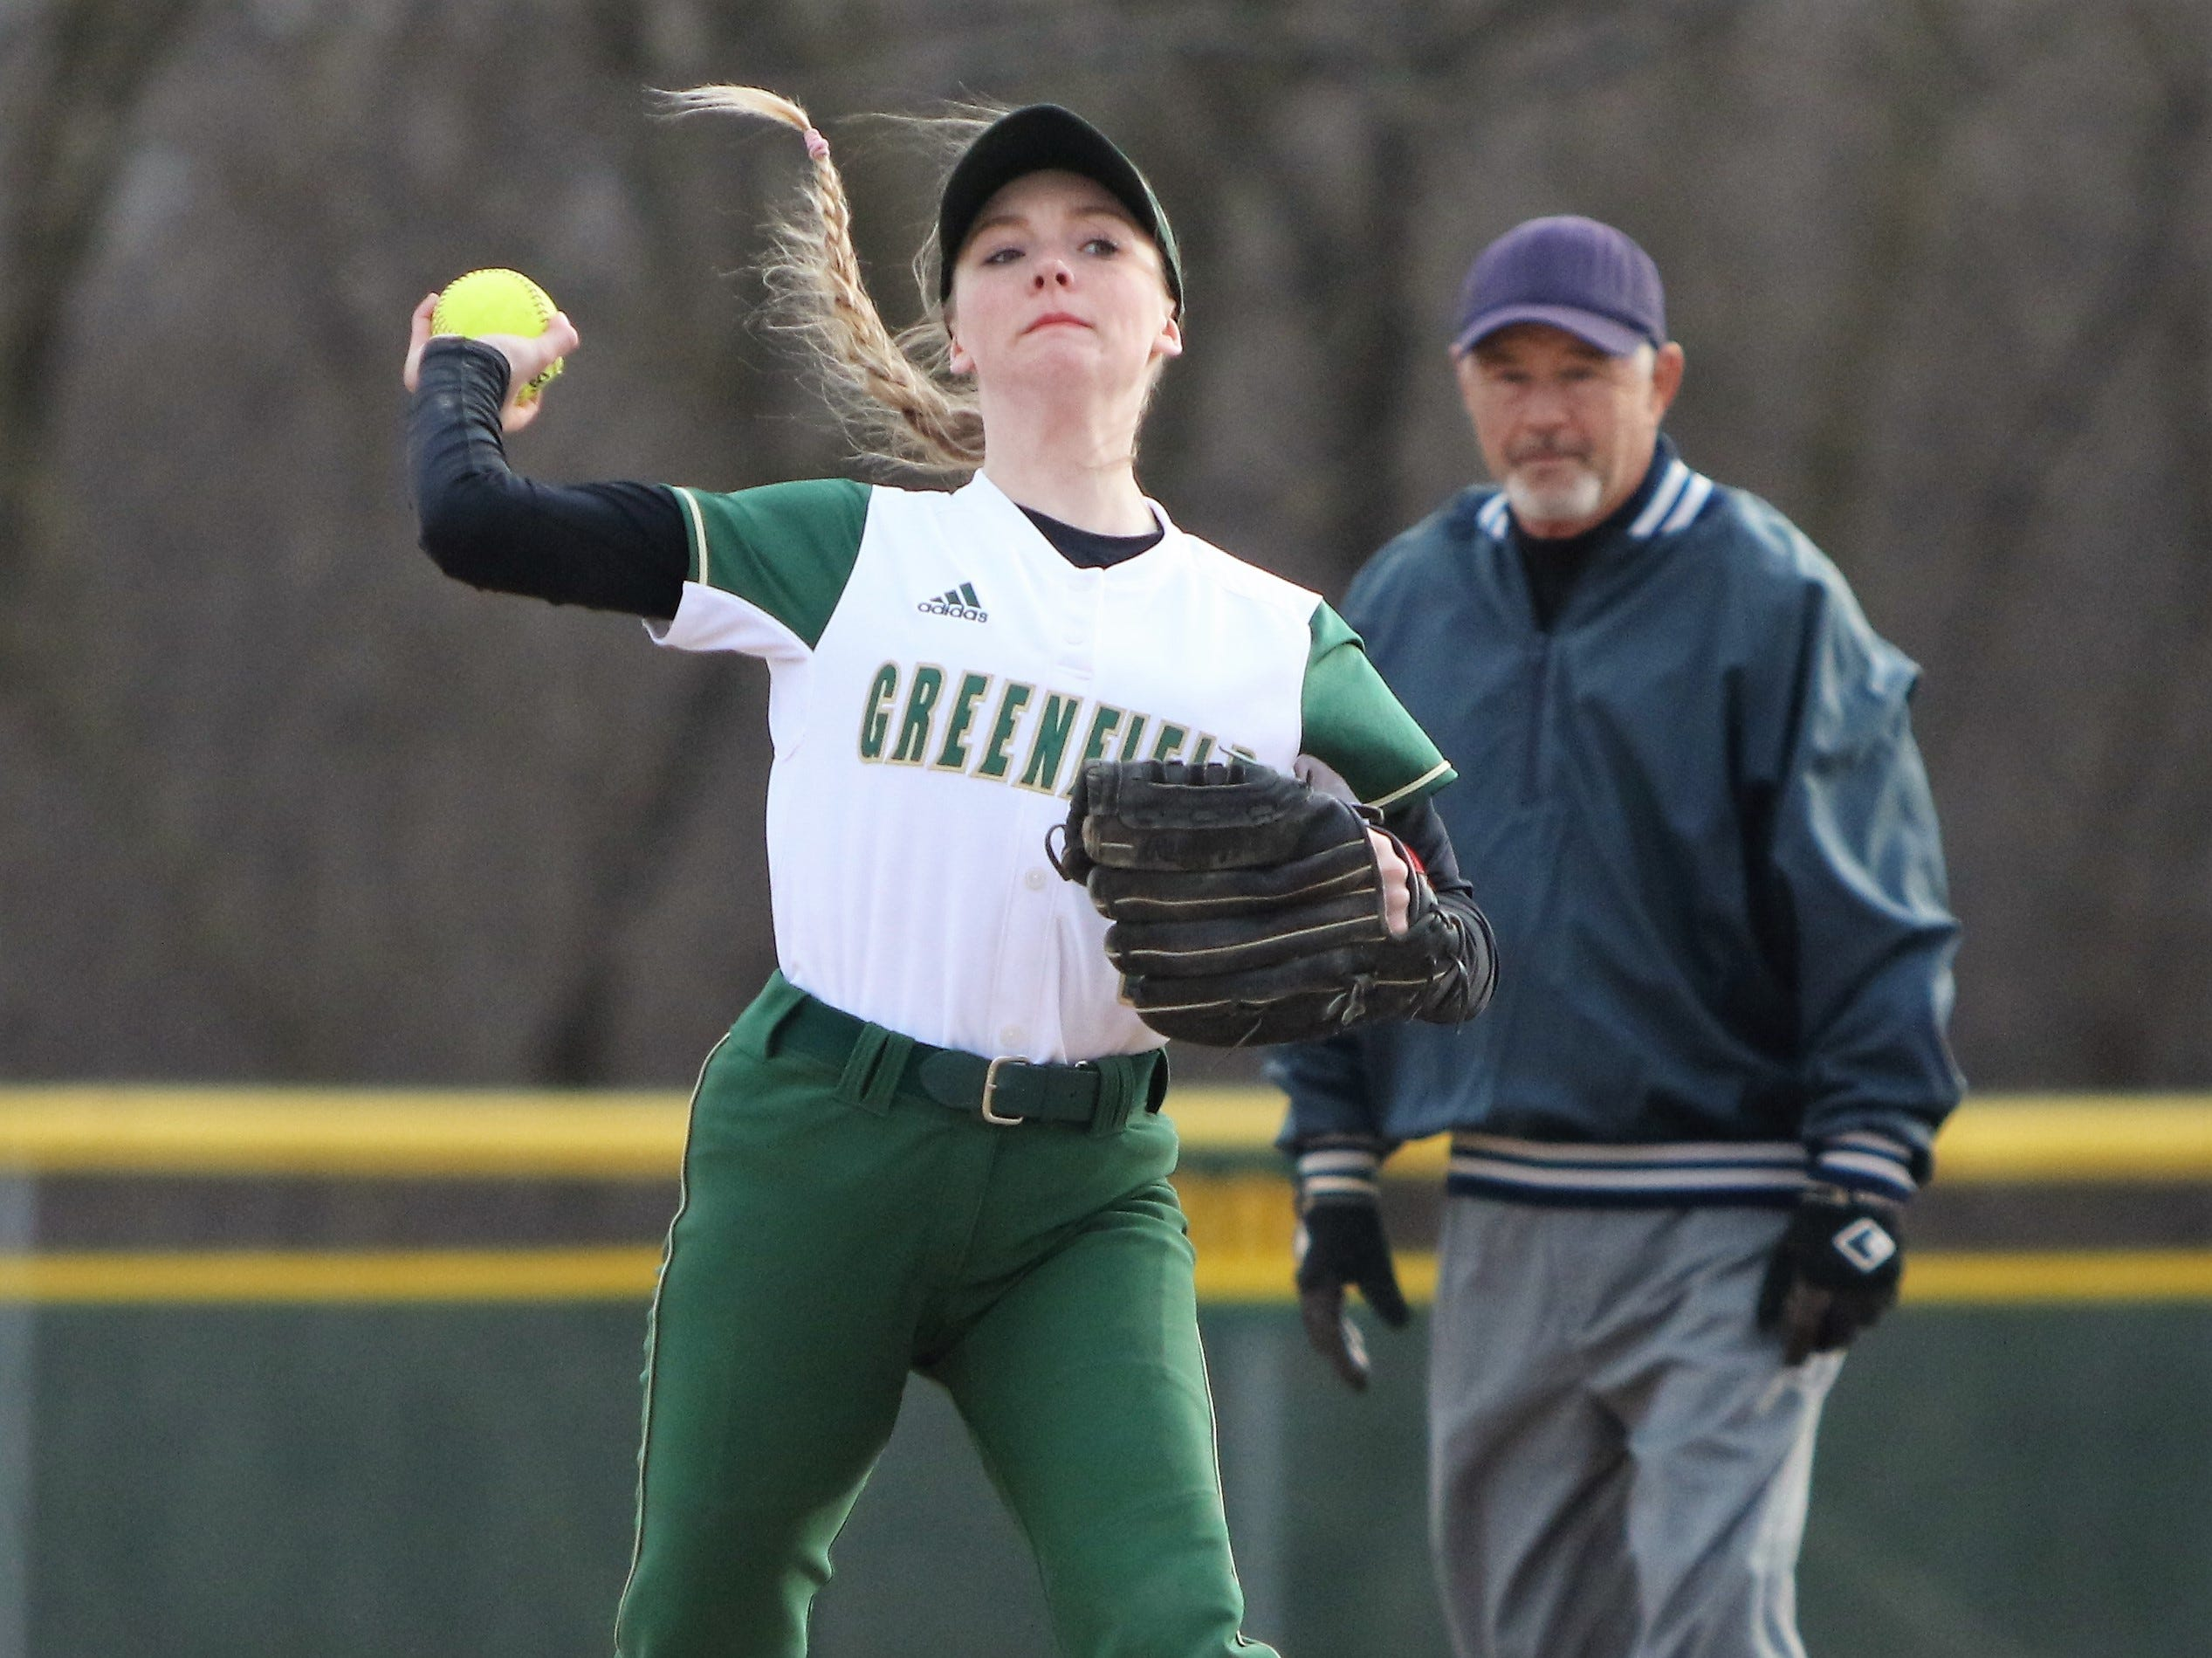 Greenfield shortstop Amanda Polachek throws to first base after fielding a grounder against Whitnall on April 3, 2019.